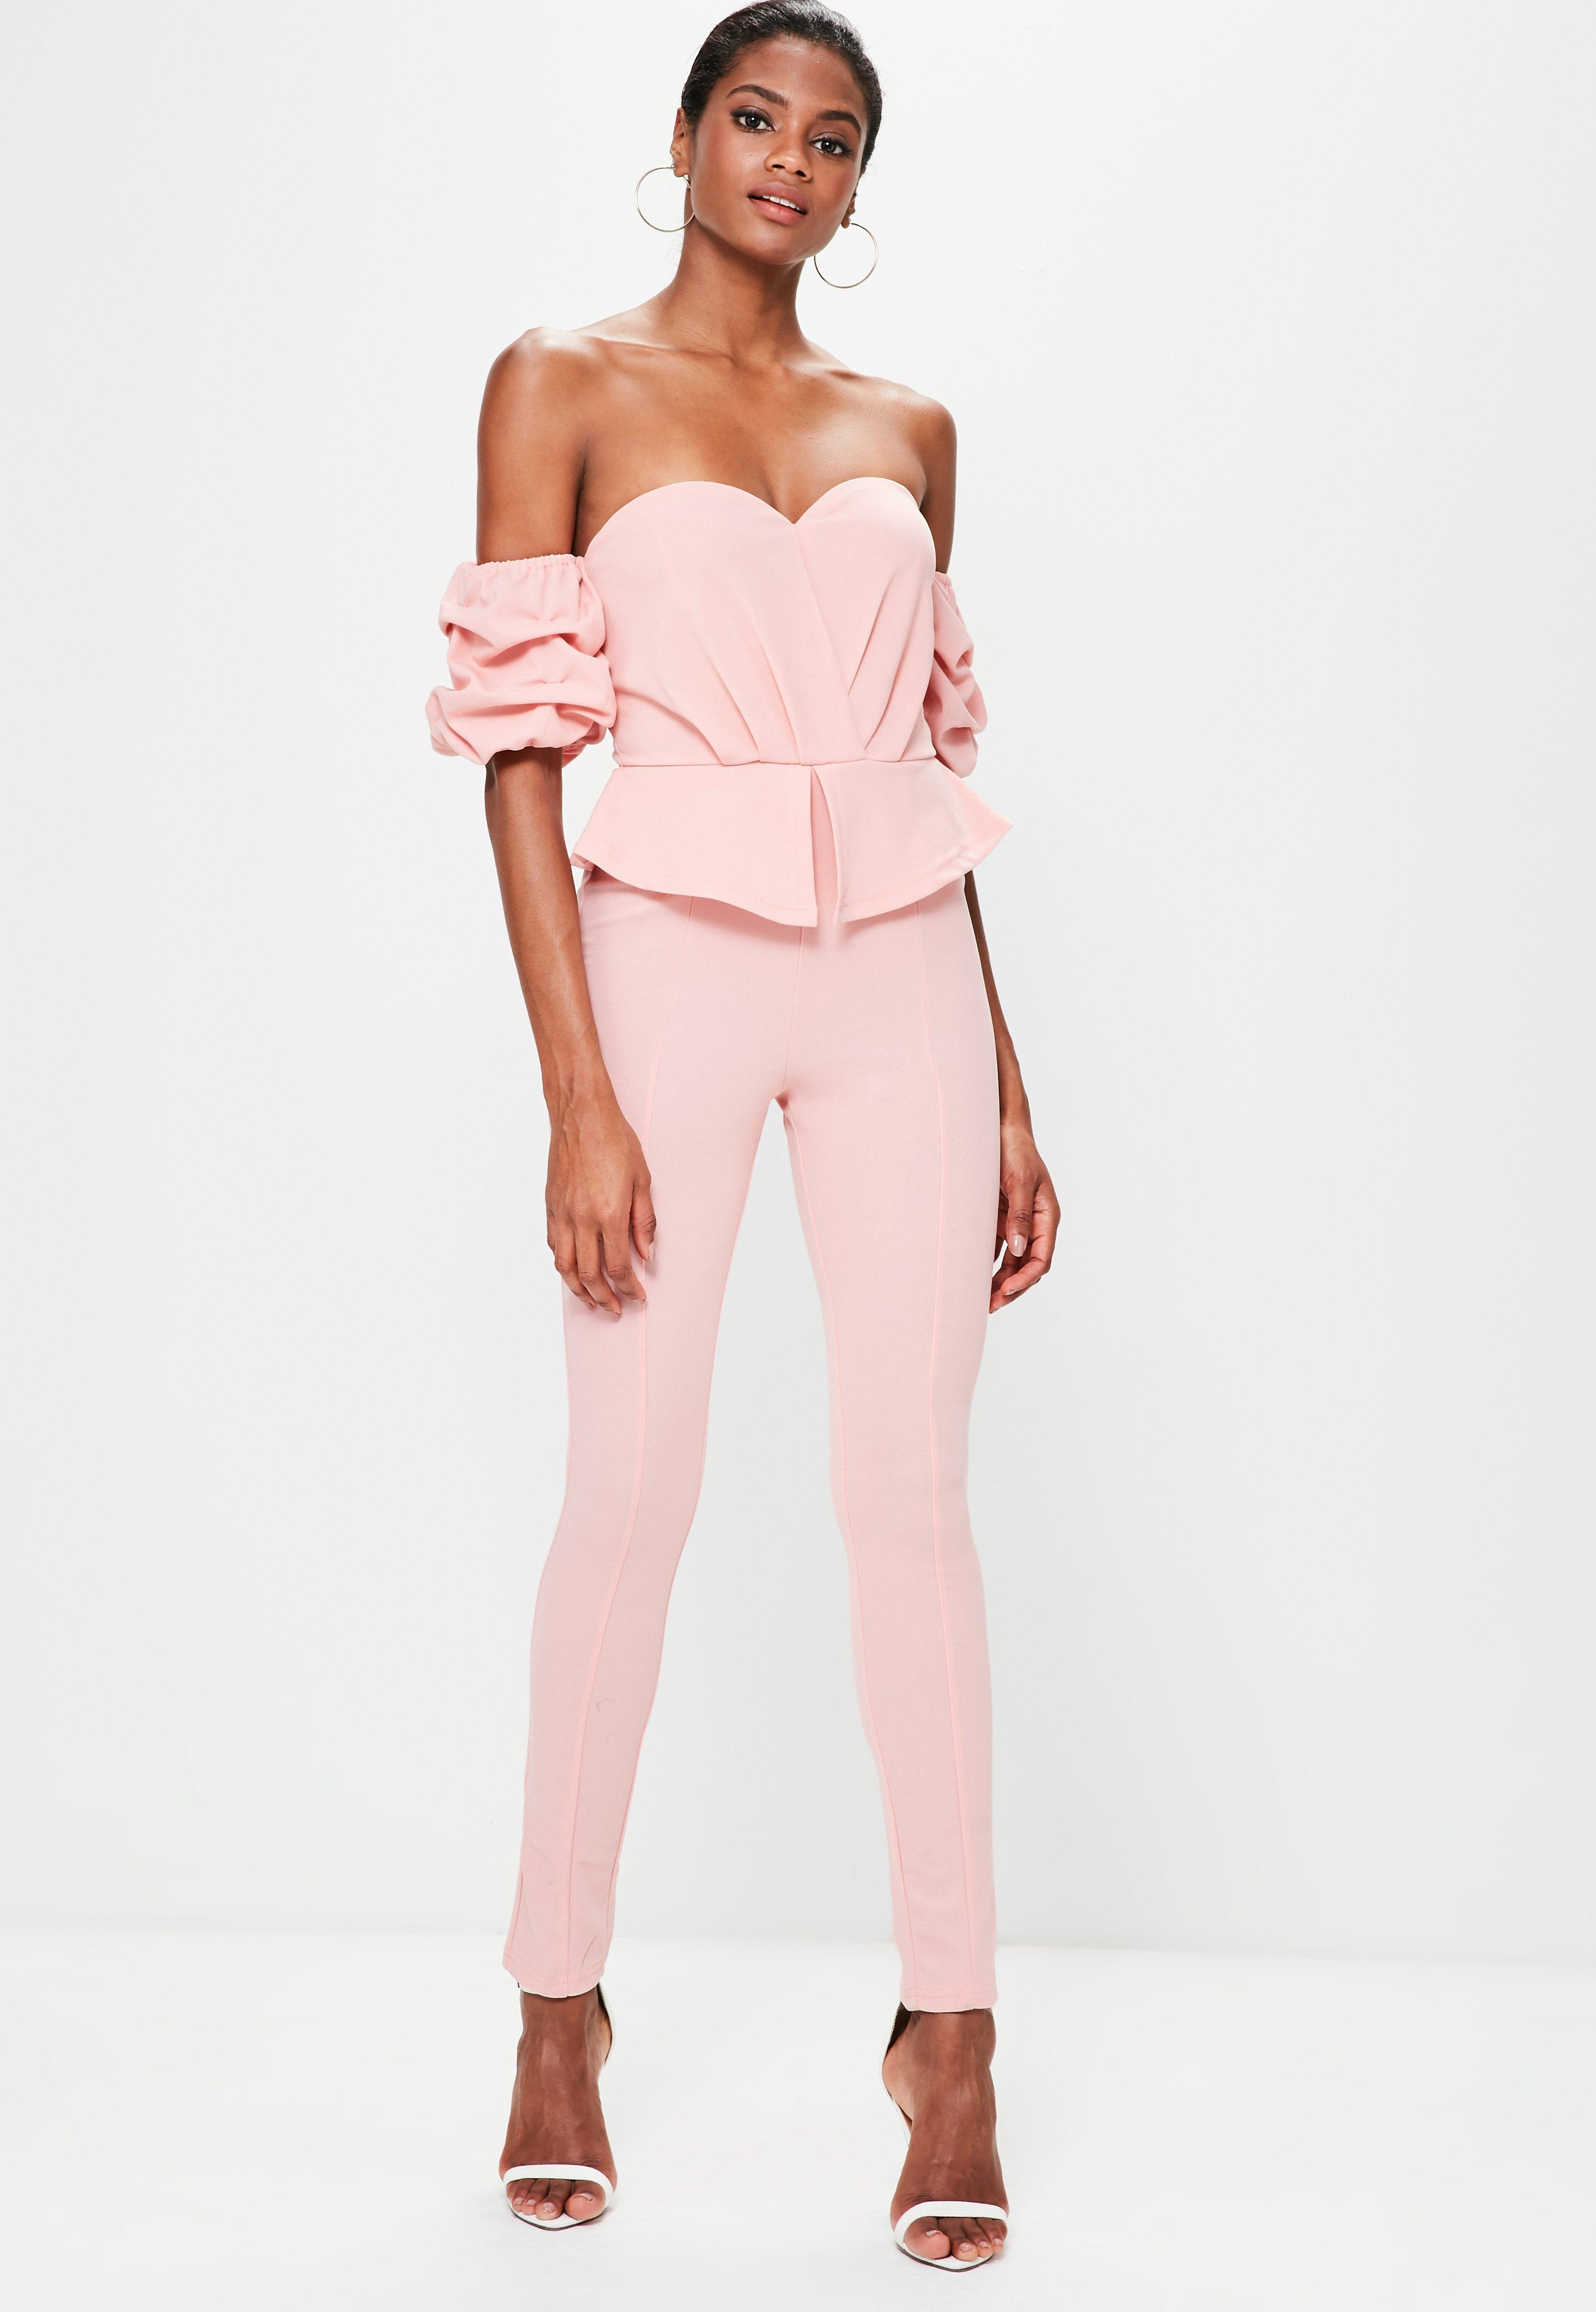 b367cac038c2 Lyst - Missguided Pink Bardot Puff Sleeve Jumpsuit in Pink